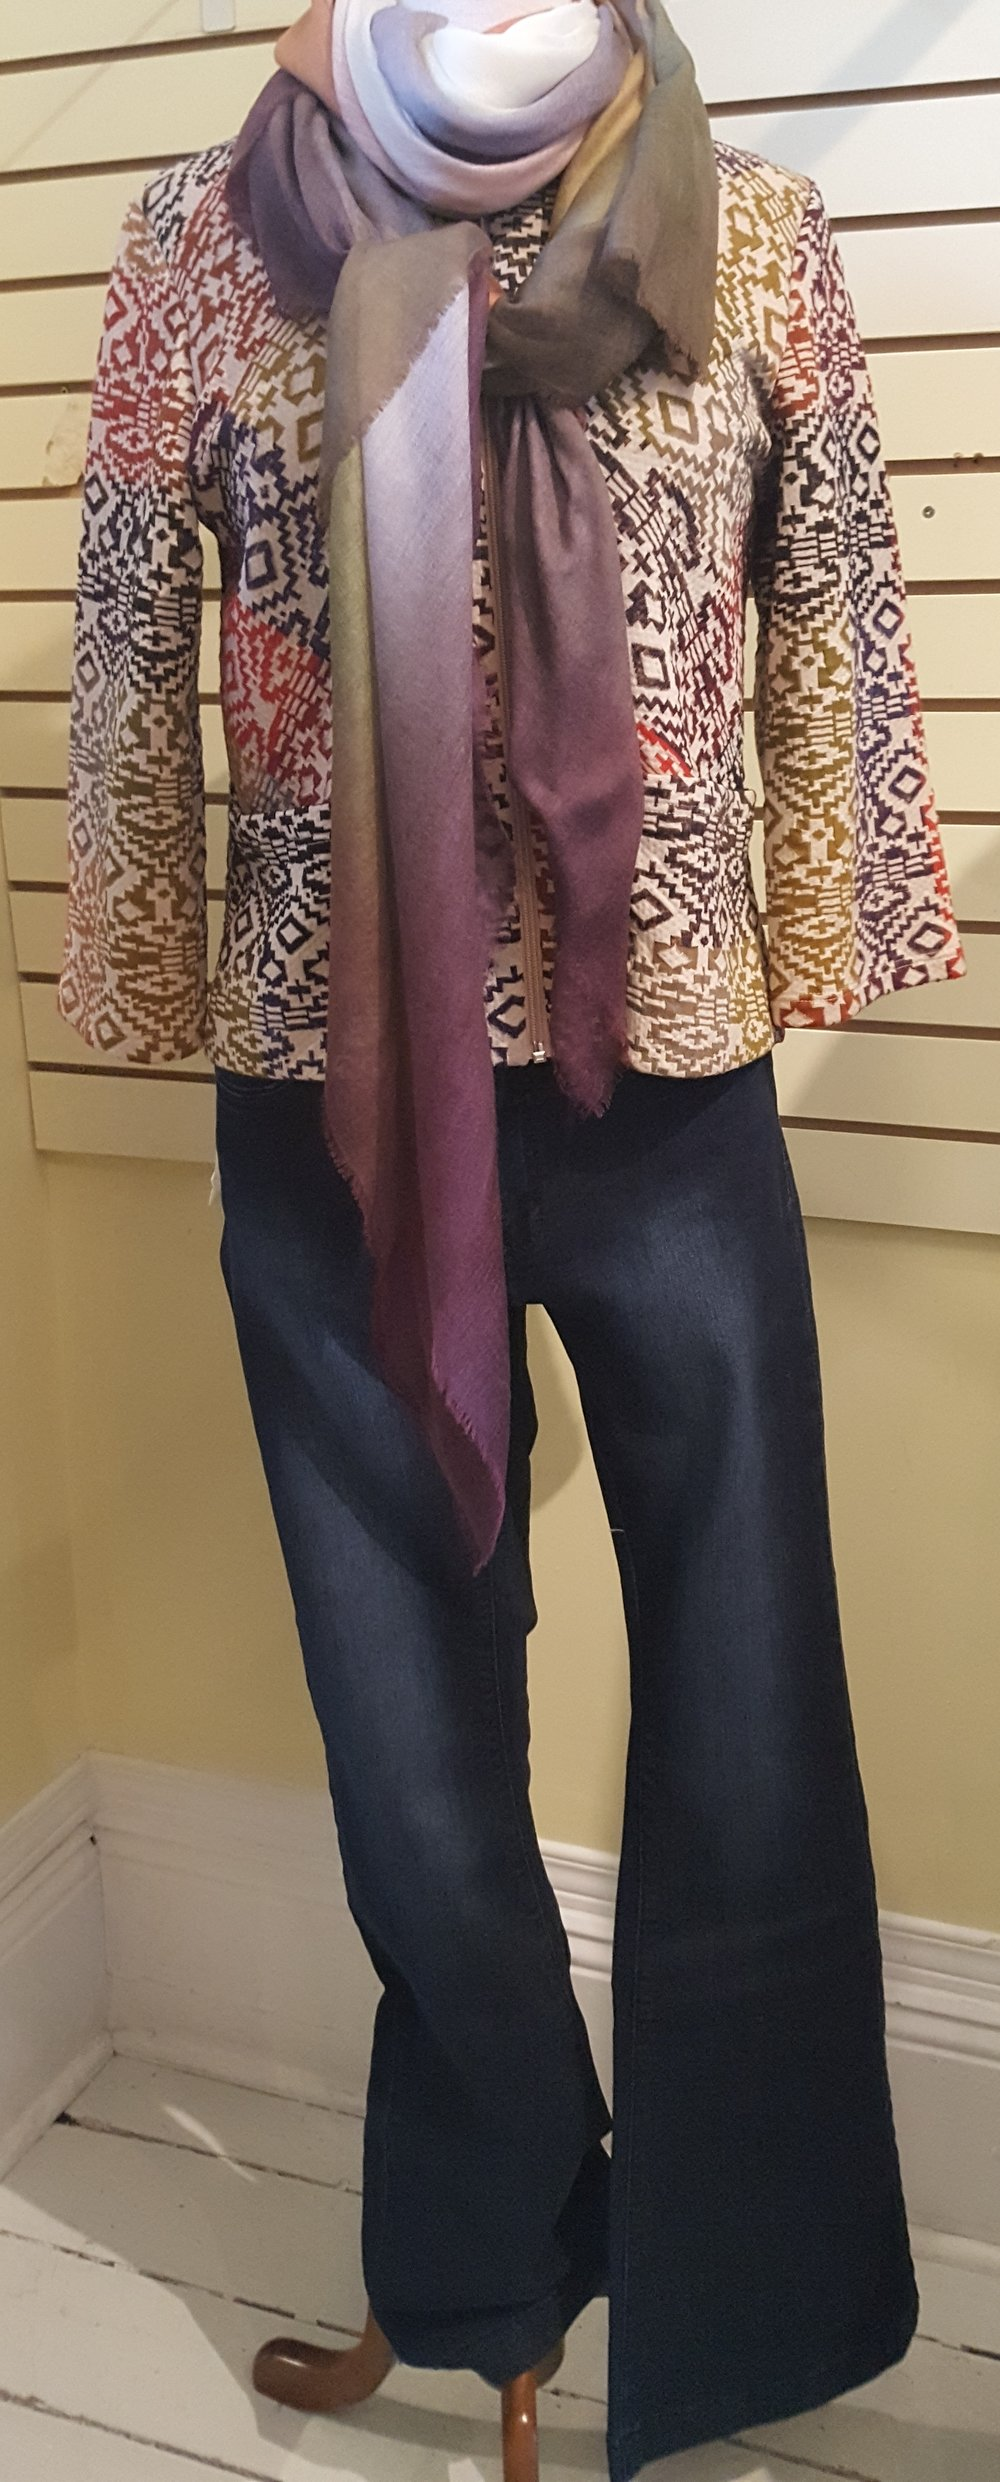 Lola wide dark denim jeans with Papillon blanc jacket, Tilo scarf with colours to match jacketB.jpg